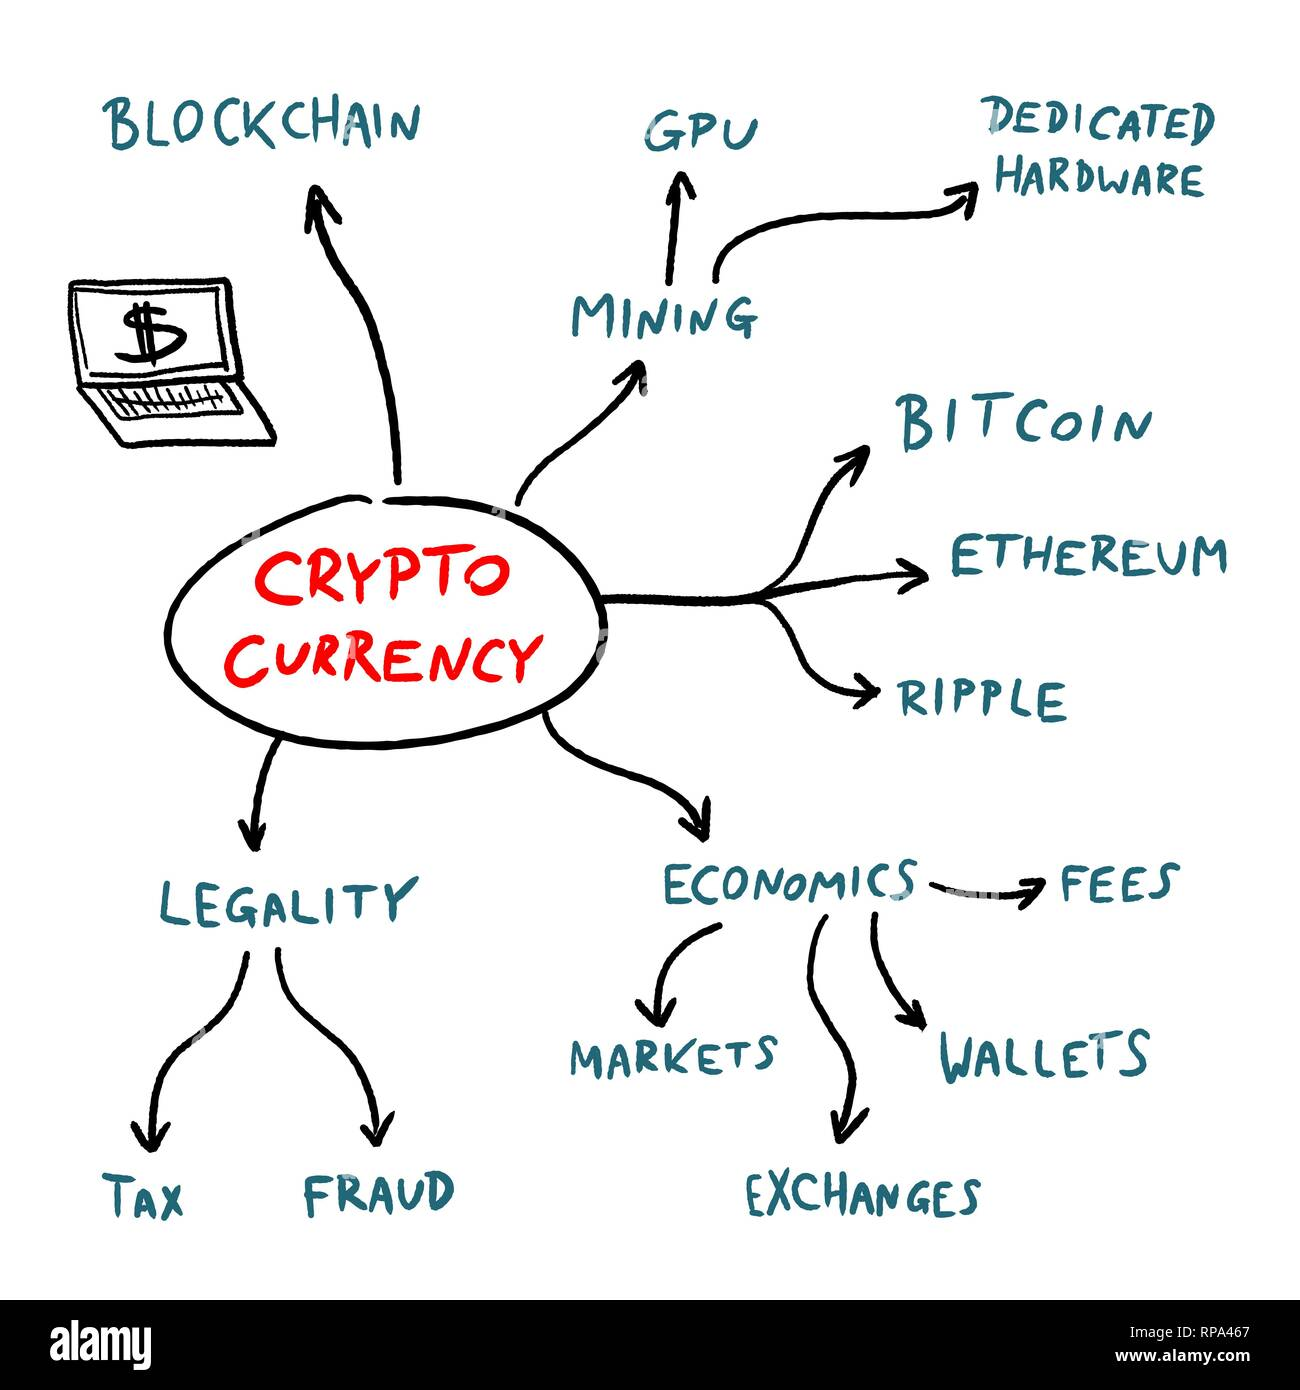 Cryptocurrency mind map - blockchain business problems and issues sign. Vector graphics. - Stock Vector